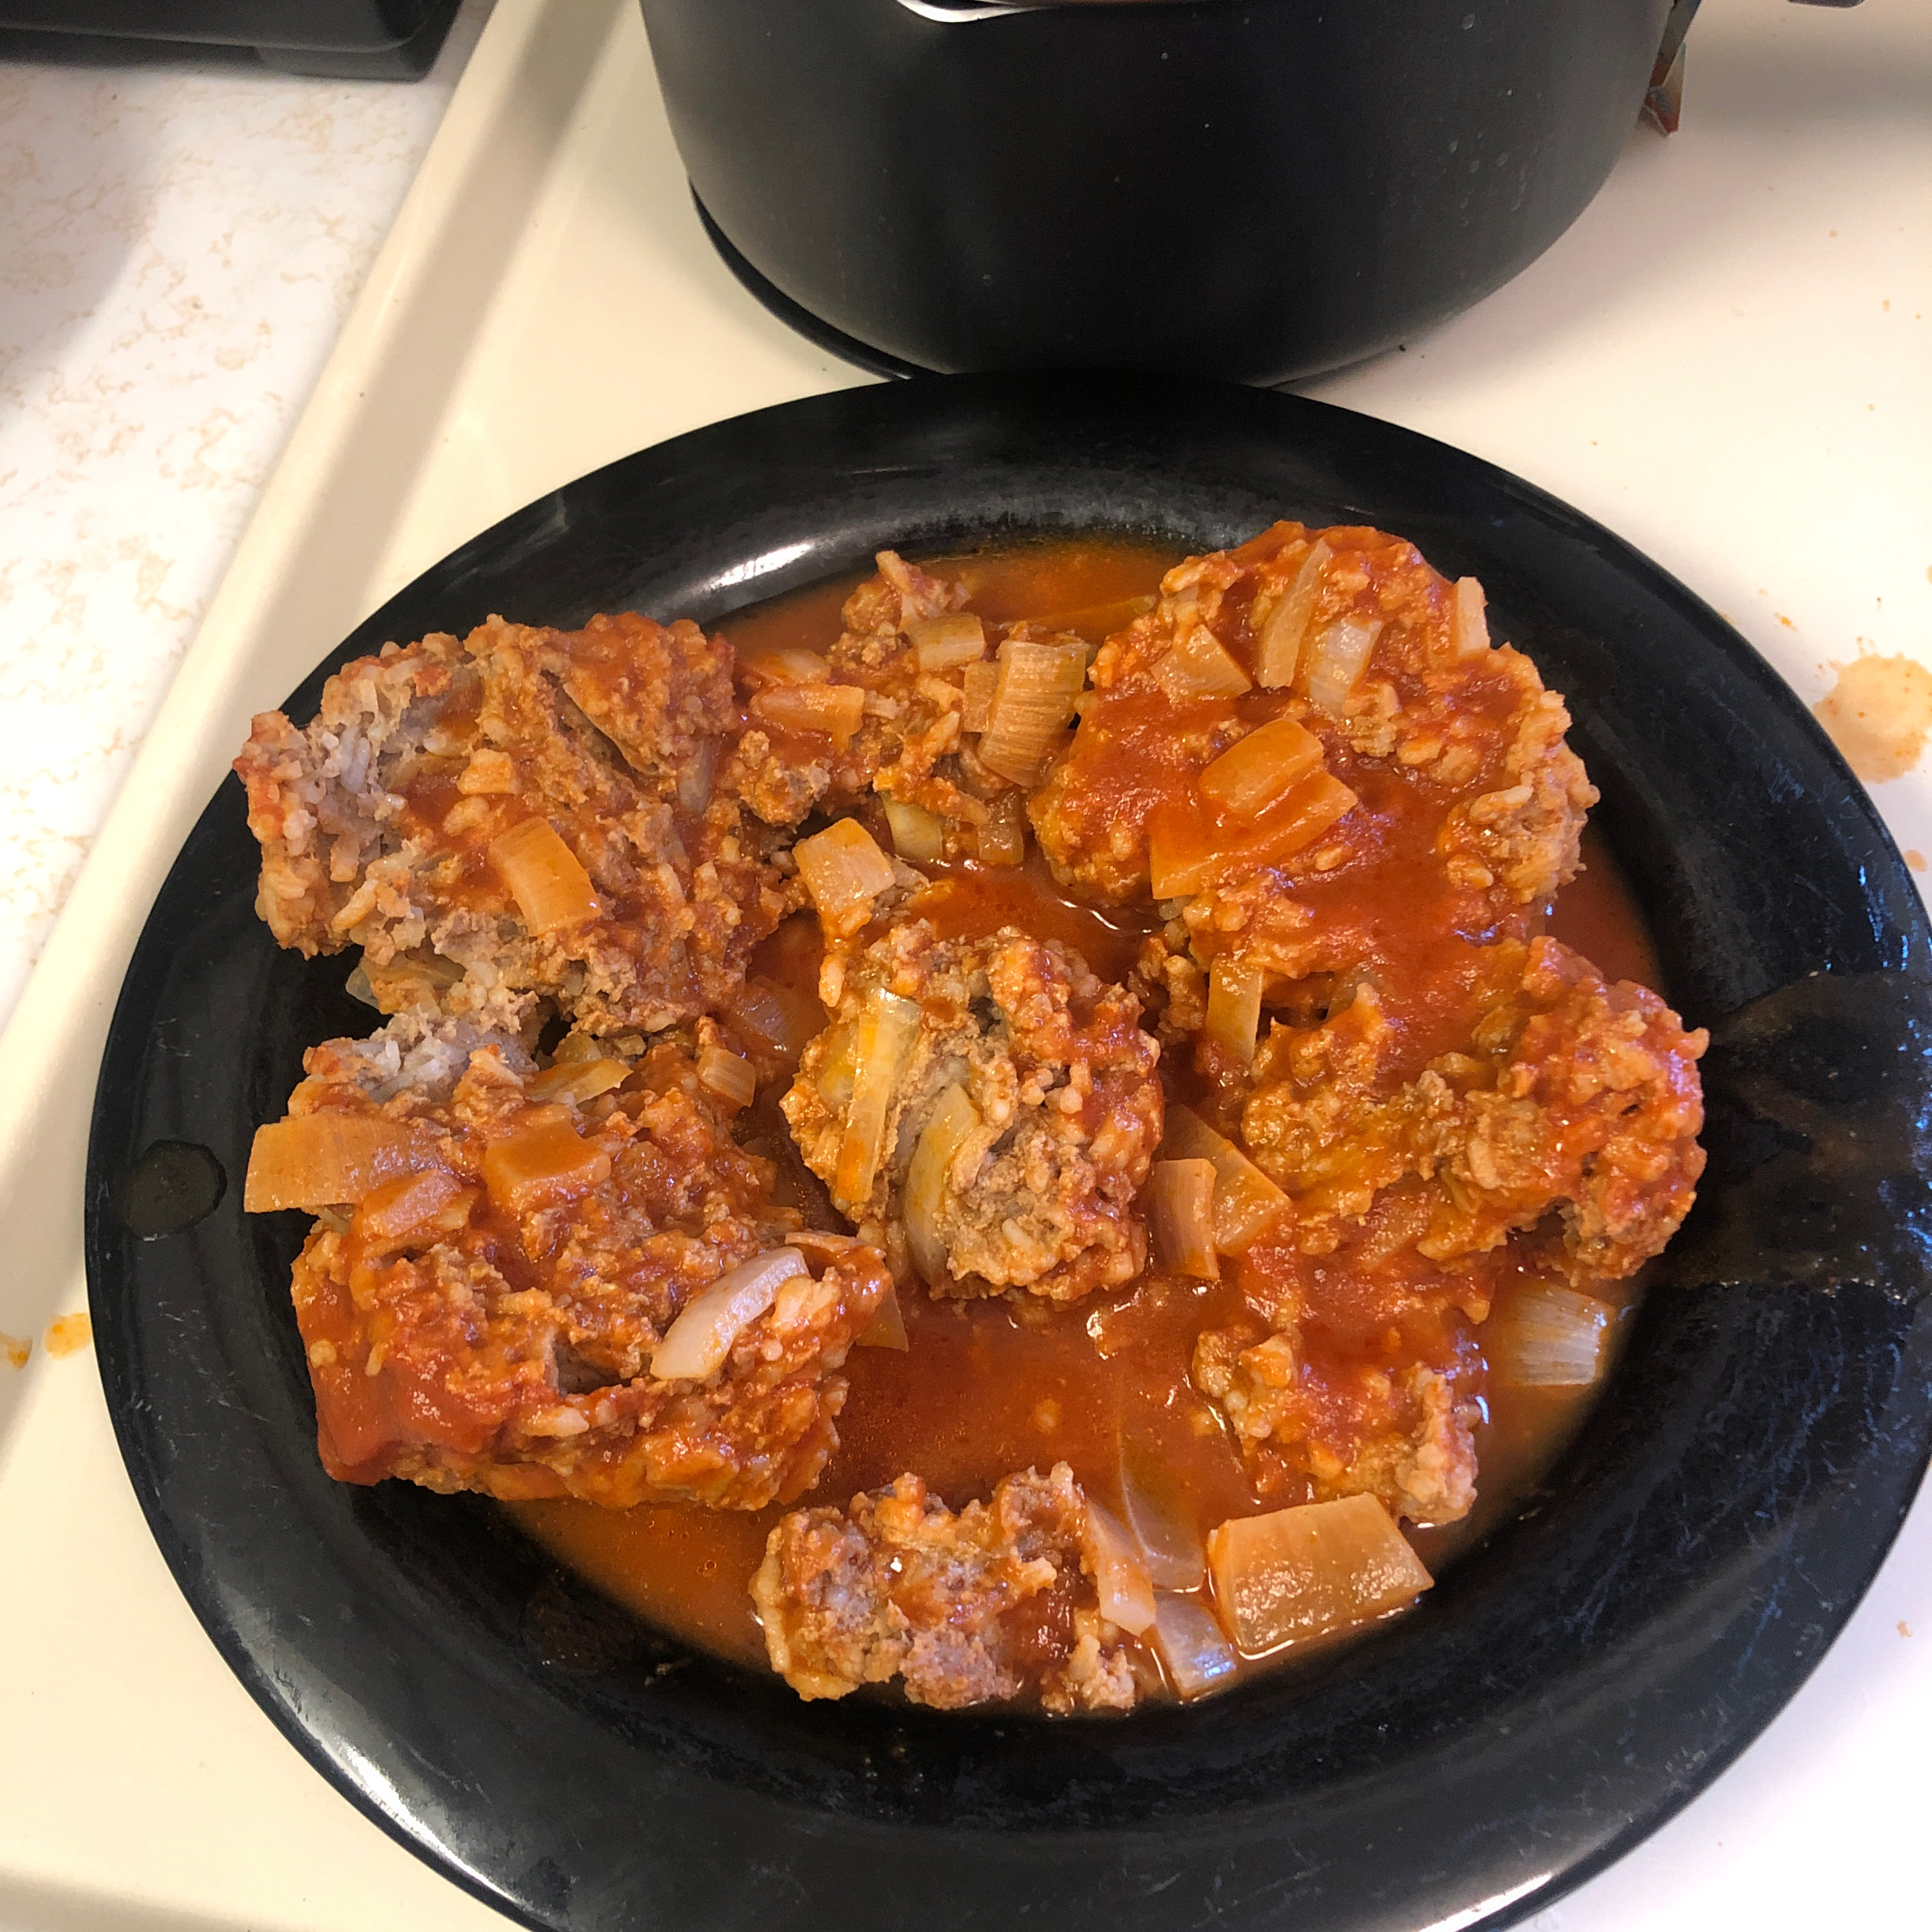 Porcupine Meatballs in Tomato Sauce Ethan Aaron Wymer